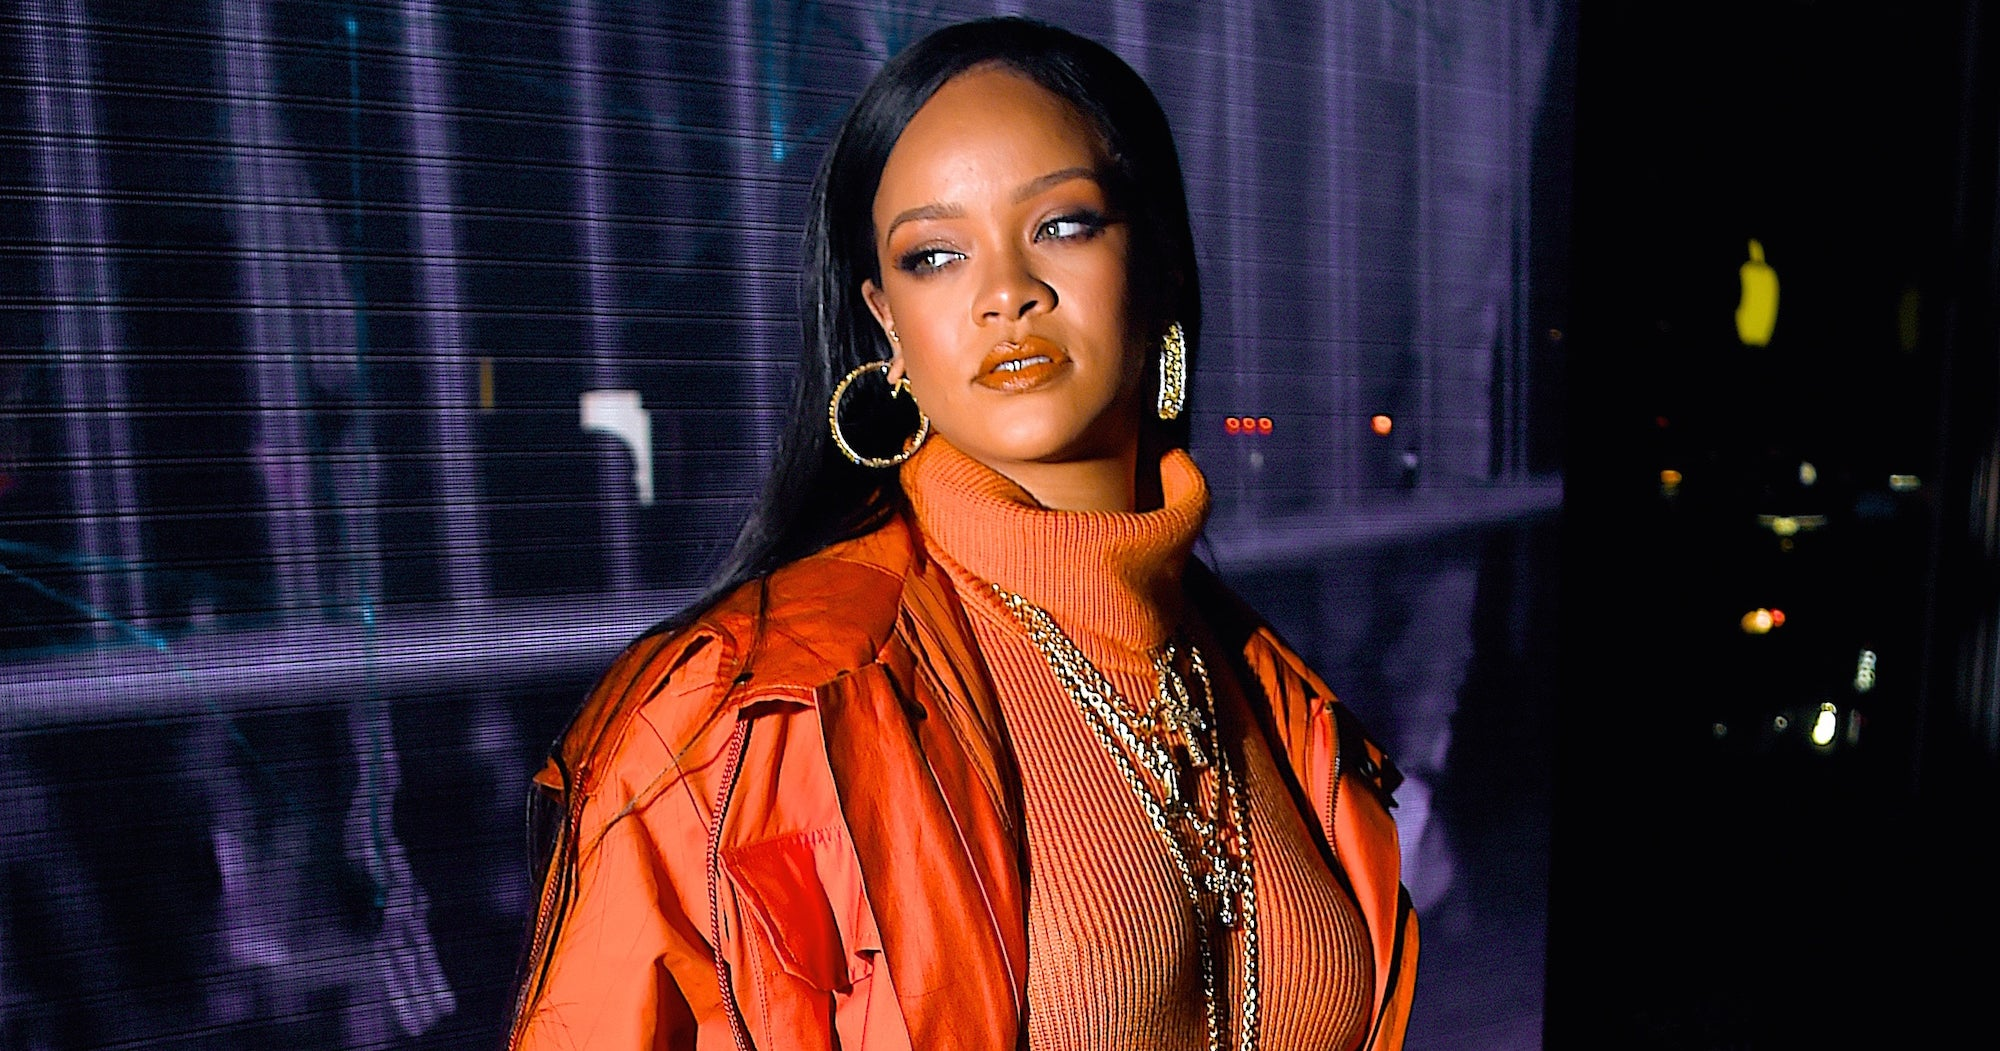 Rihanna Is Launching Fenty Perfume & Here's What We Know So Far